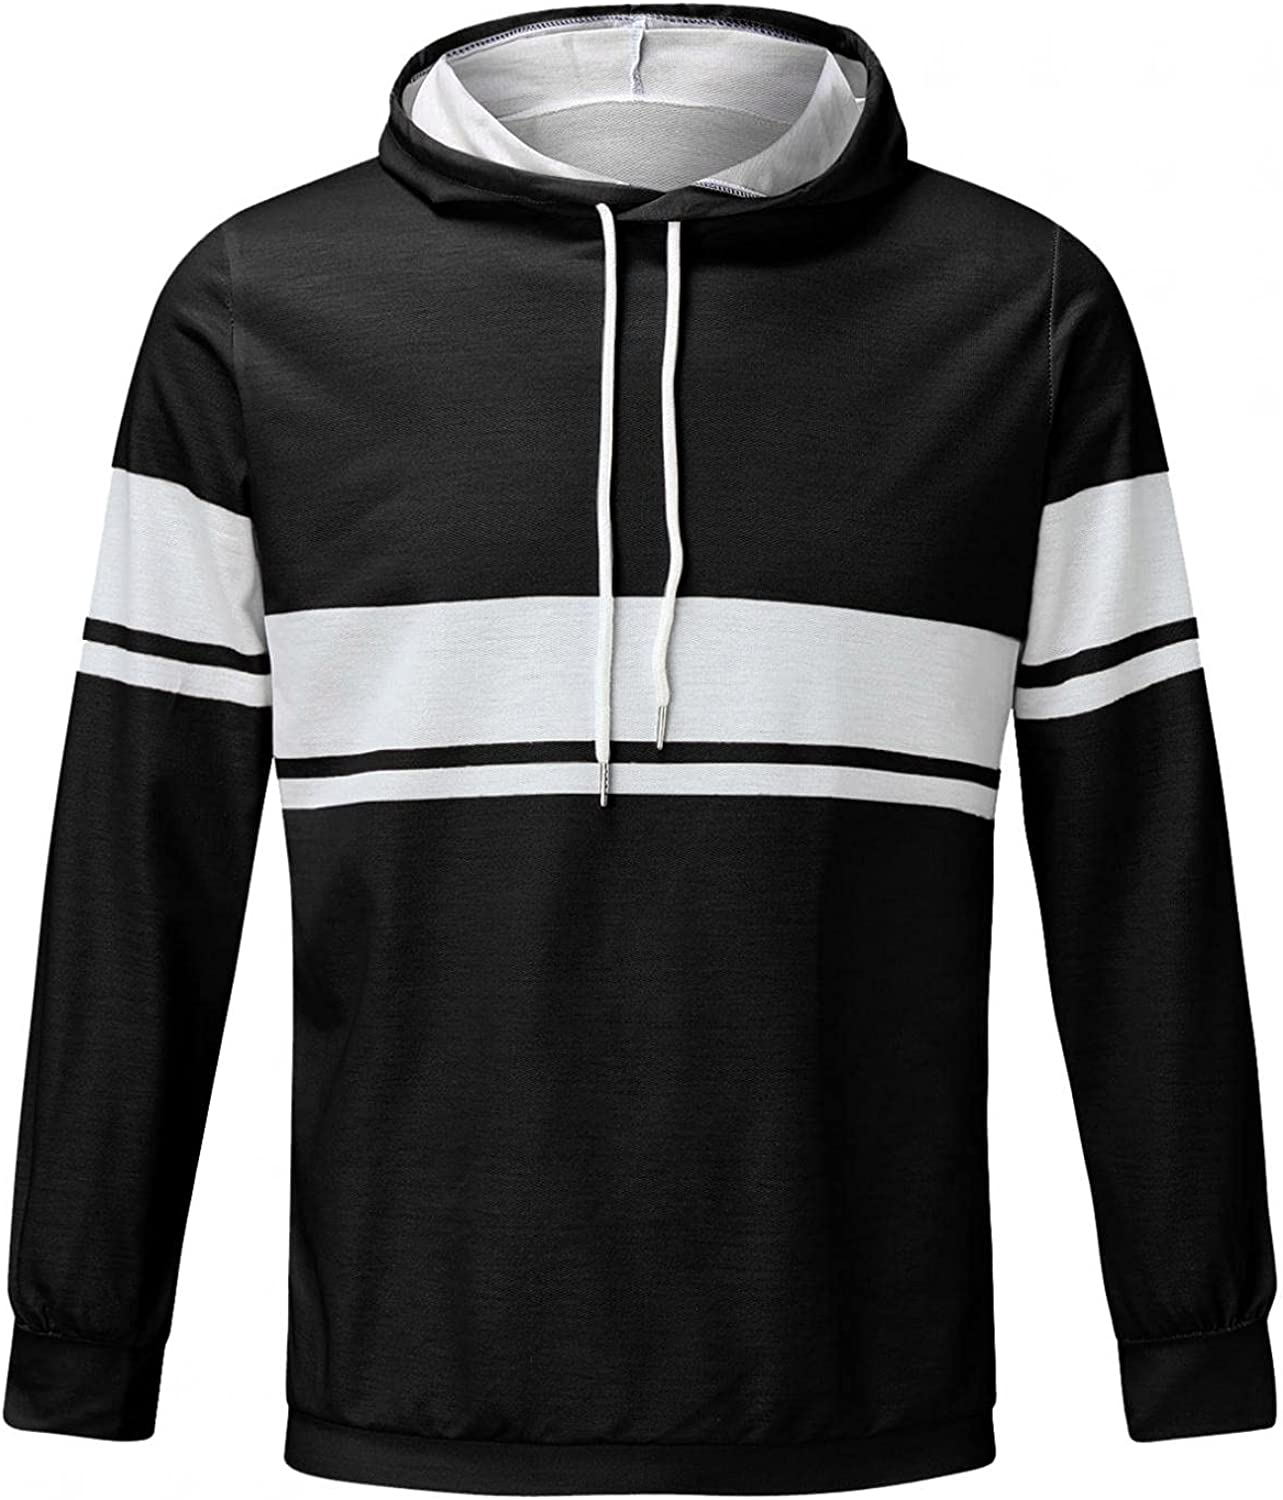 Men's Pullover Hooded Sweaters Autumn Winter Blue White Striped Printed Casual Hipster Gym Drawstring Hooded Sweater